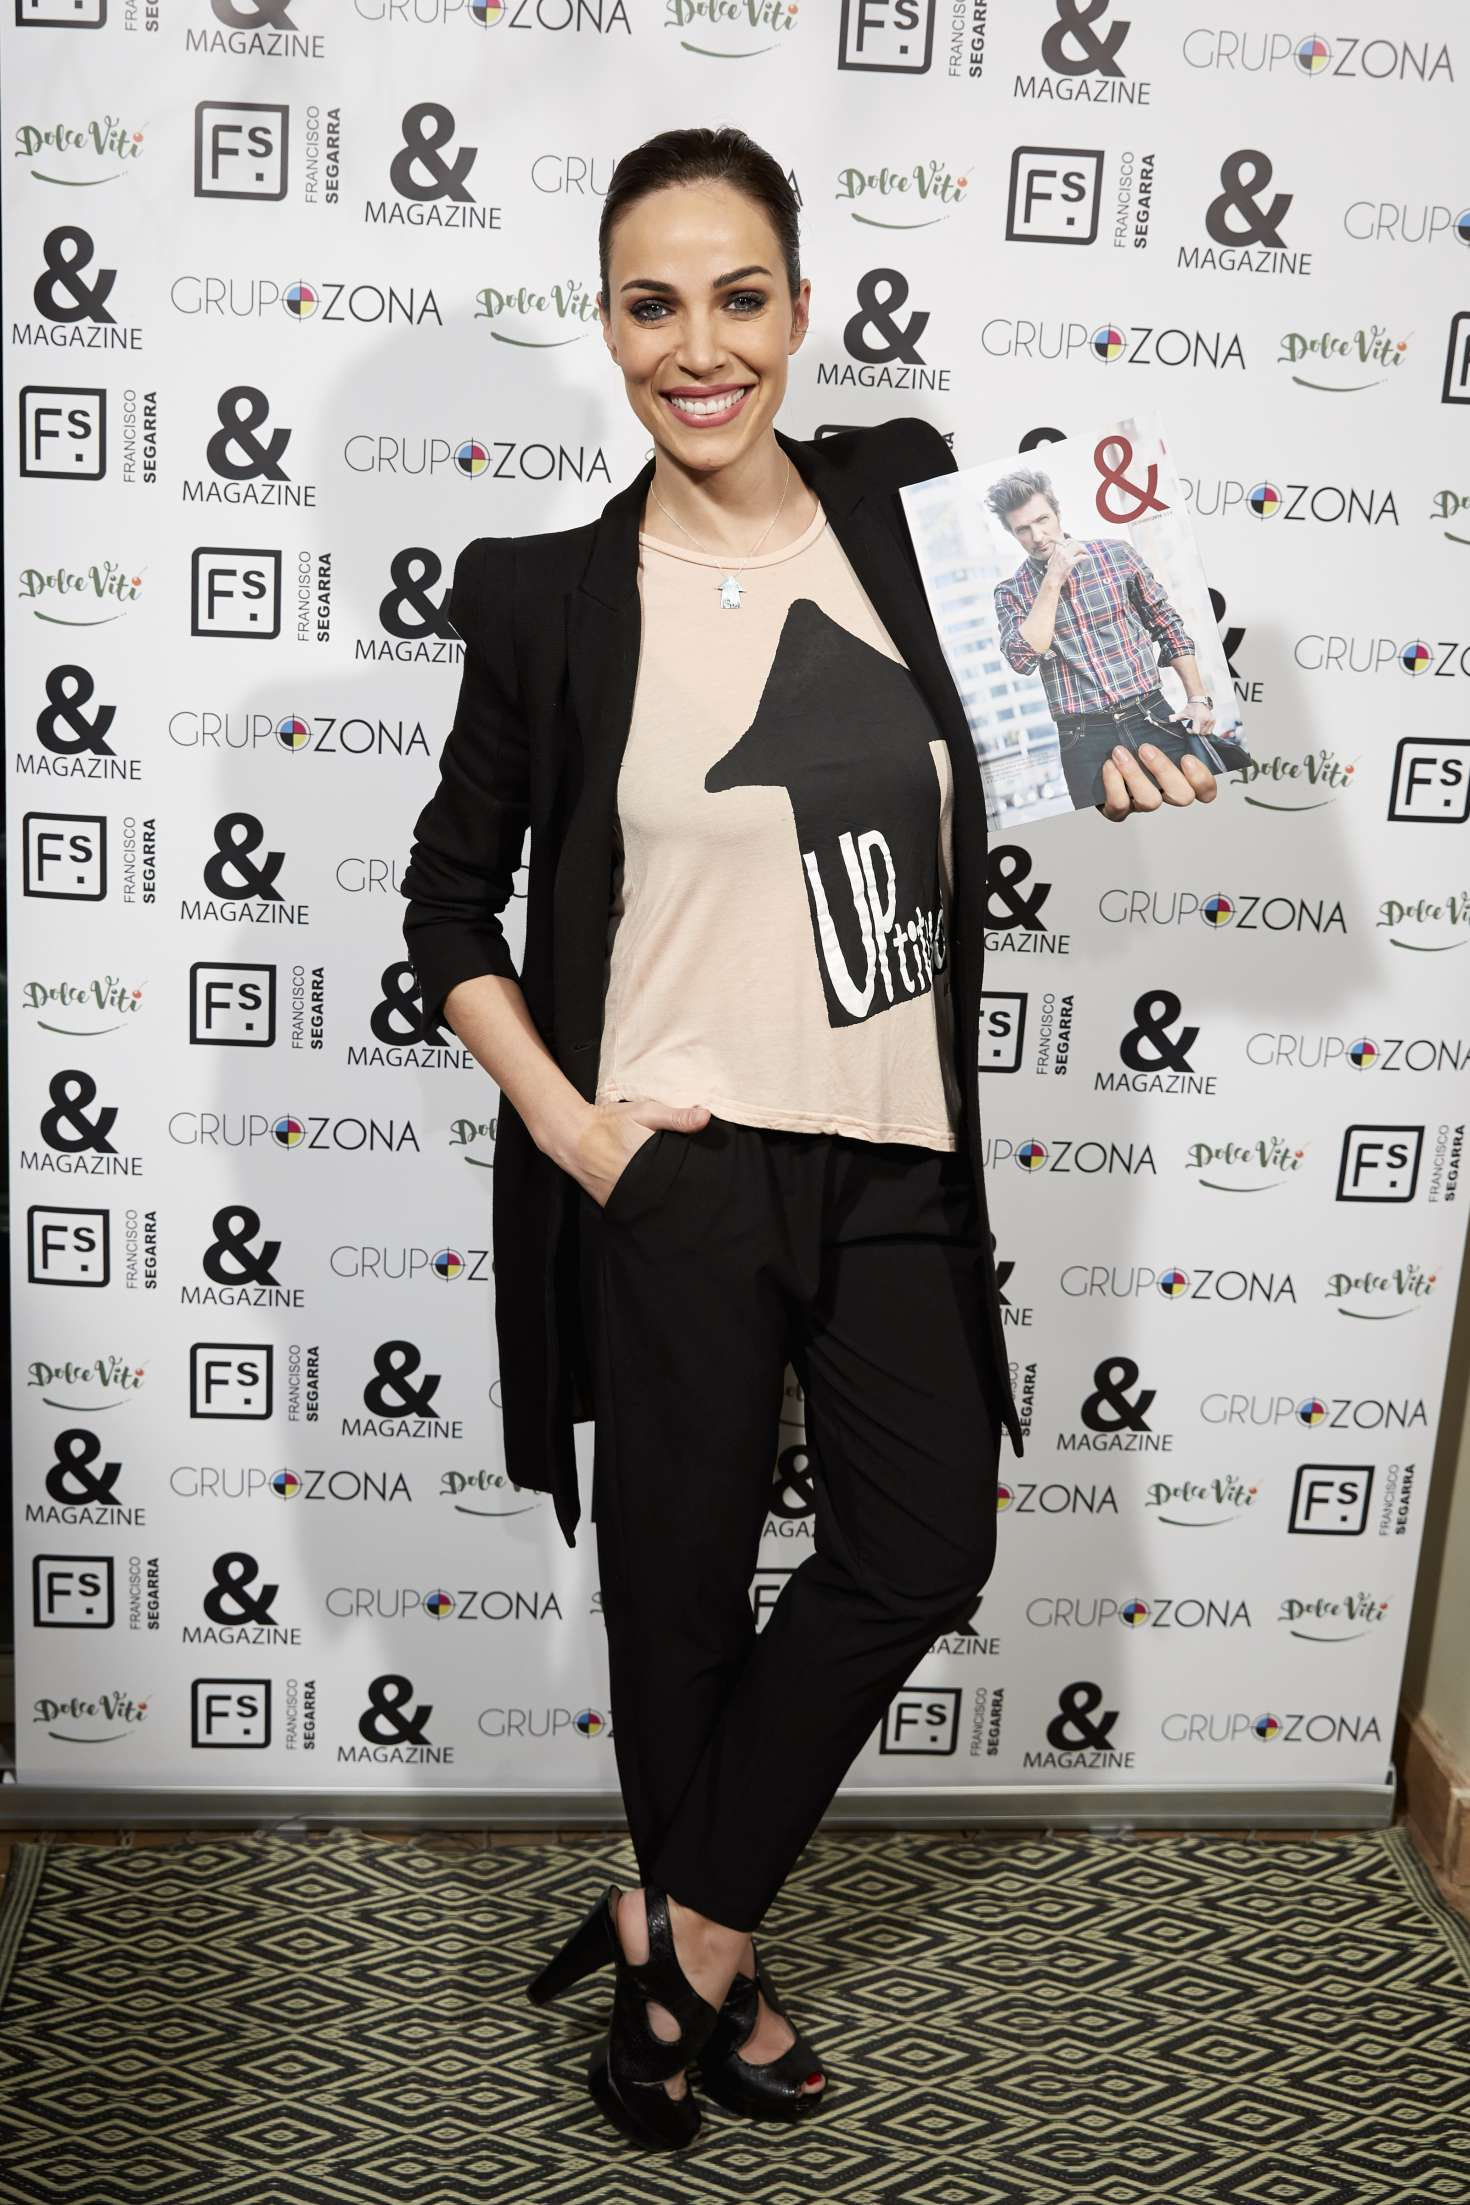 Nerea garmendia mart nez 39 and magazine no 9 39 launch - Francisco segarra ...